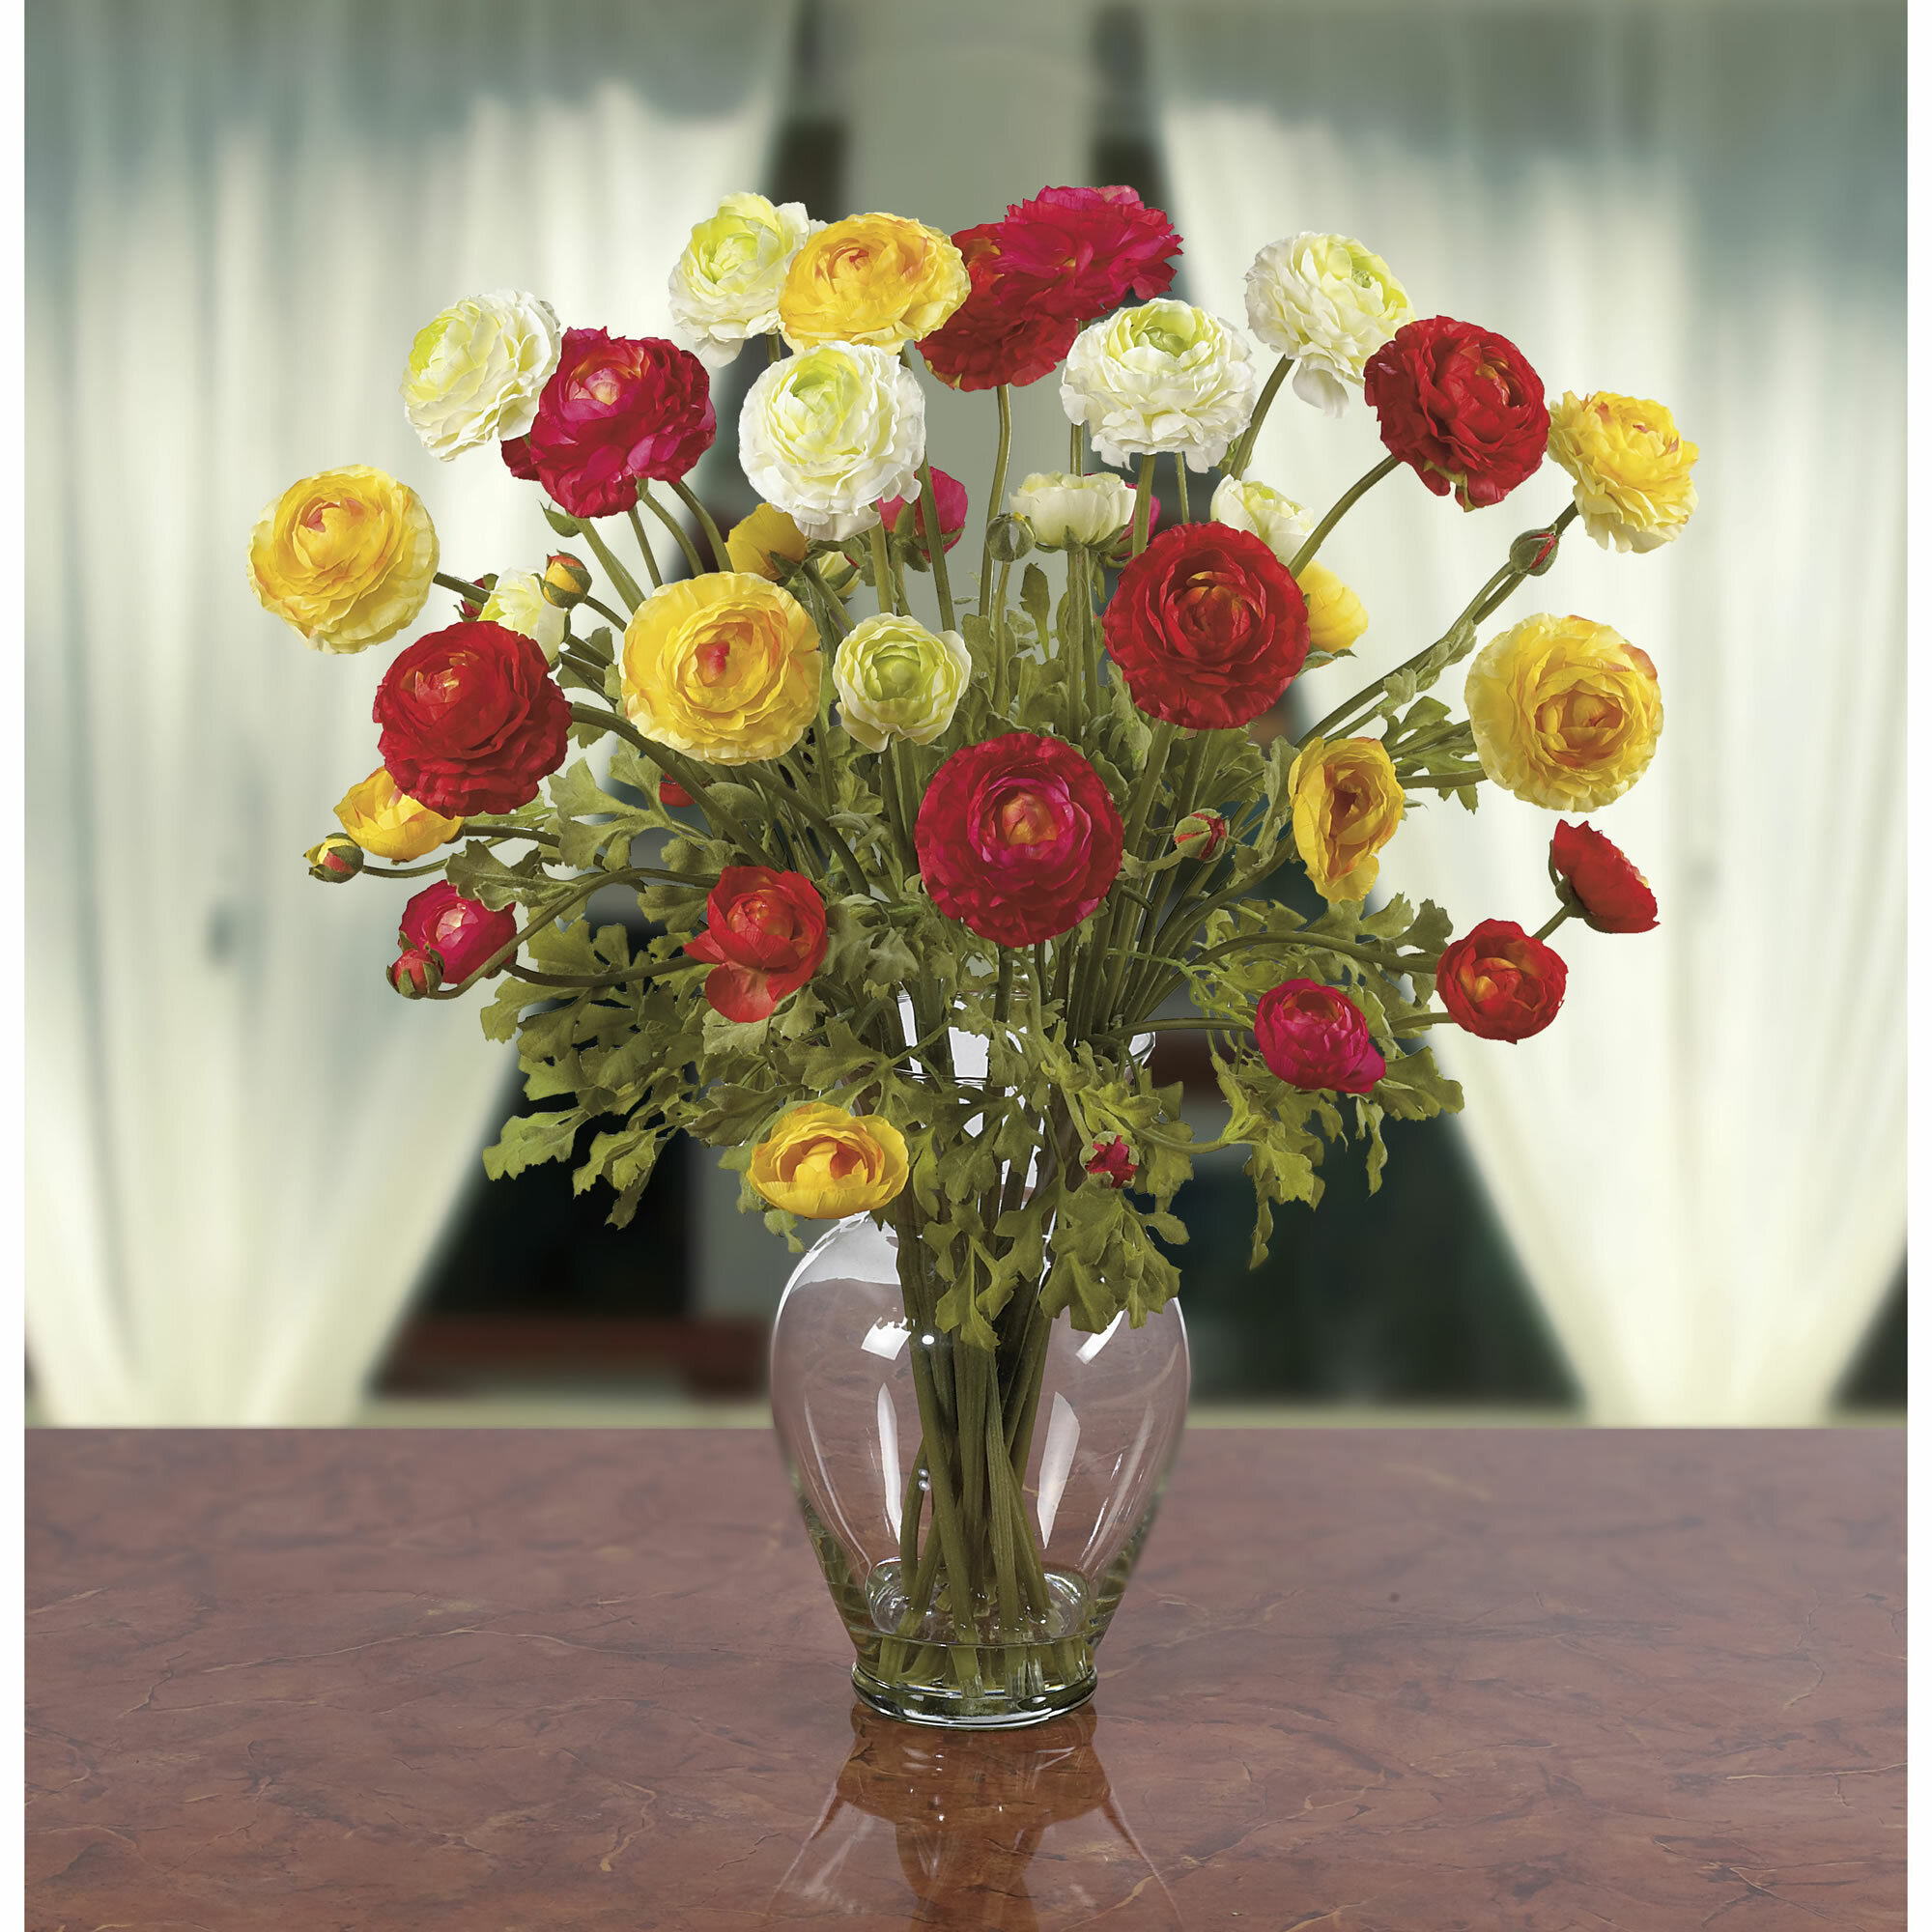 Darby Home Co Silk Ranunculus Mixed Floral Arrangements And Centerpieces In Vase Reviews Wayfair